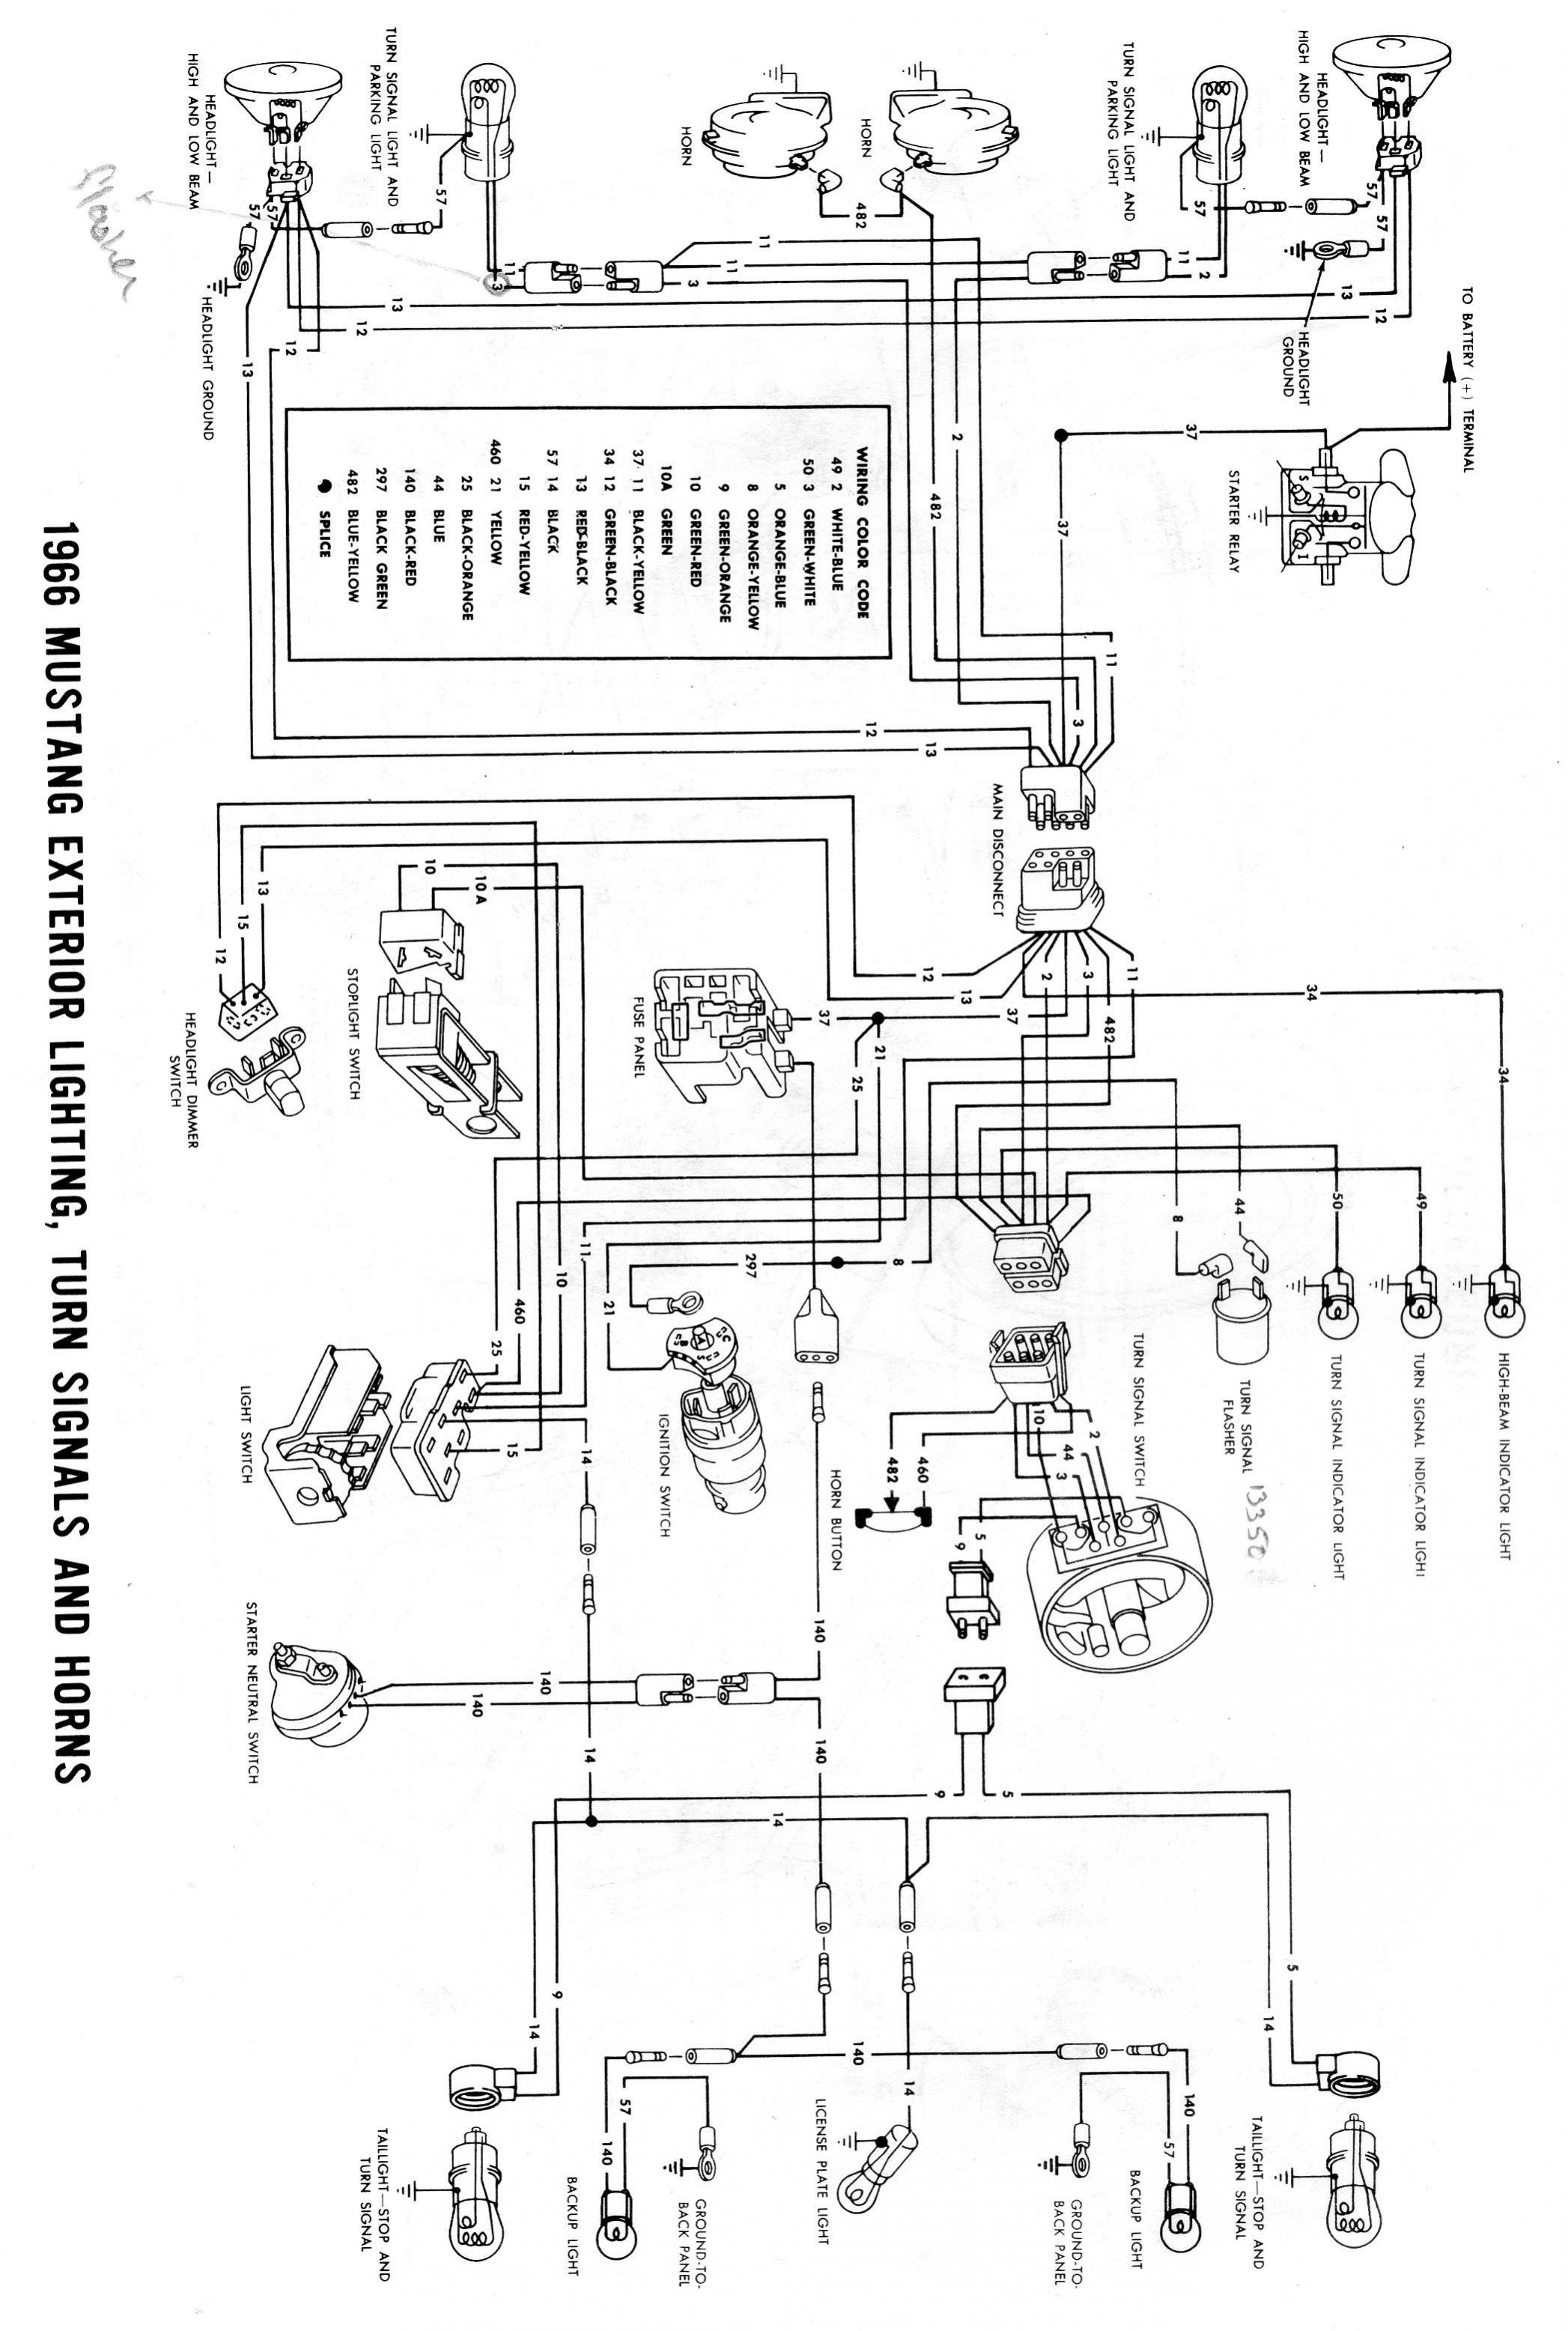 1967 mustang console wiring diagram wiring diagrams u2022 rh autonomia co